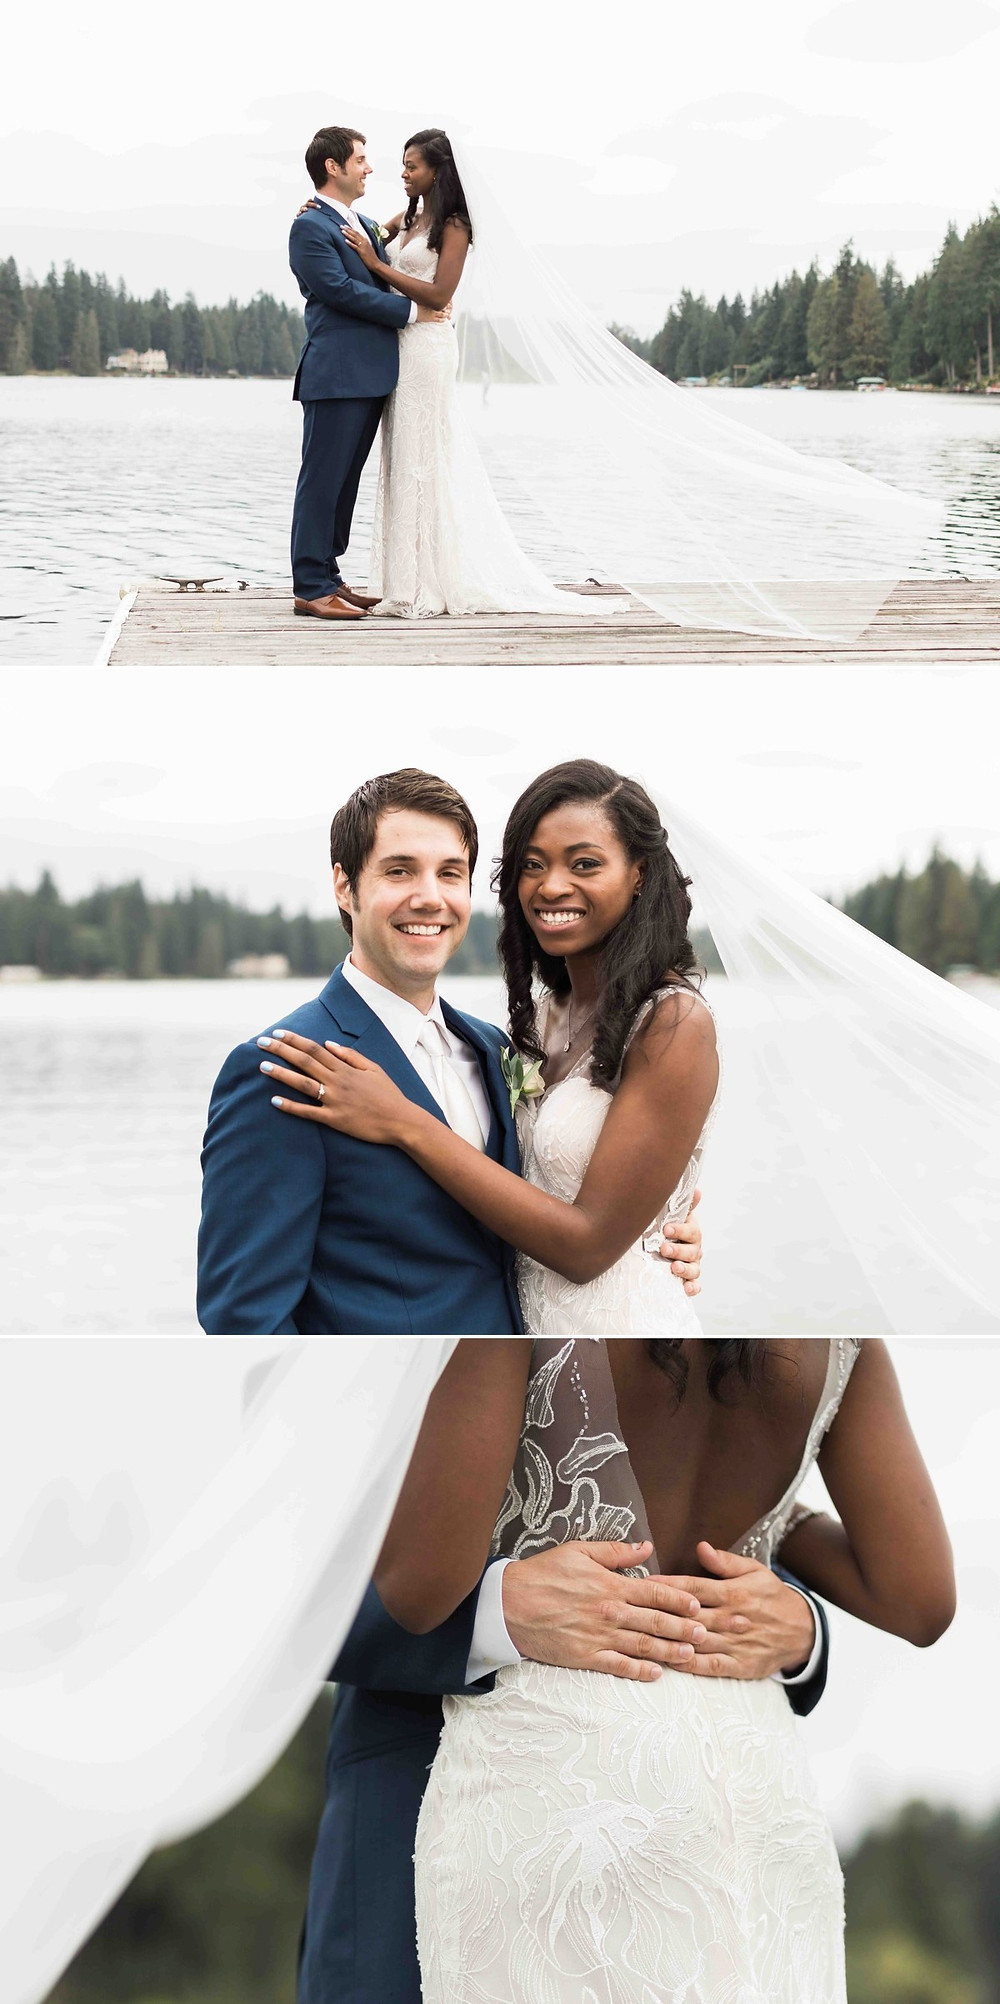 Outdoor couple portraits near the lake from a wedding at Green Gates at Flowing Lake, a wedding venue in Snohomish near Seattle, WA. | My Snohomish Wedding | Snohomish Wedding Planning